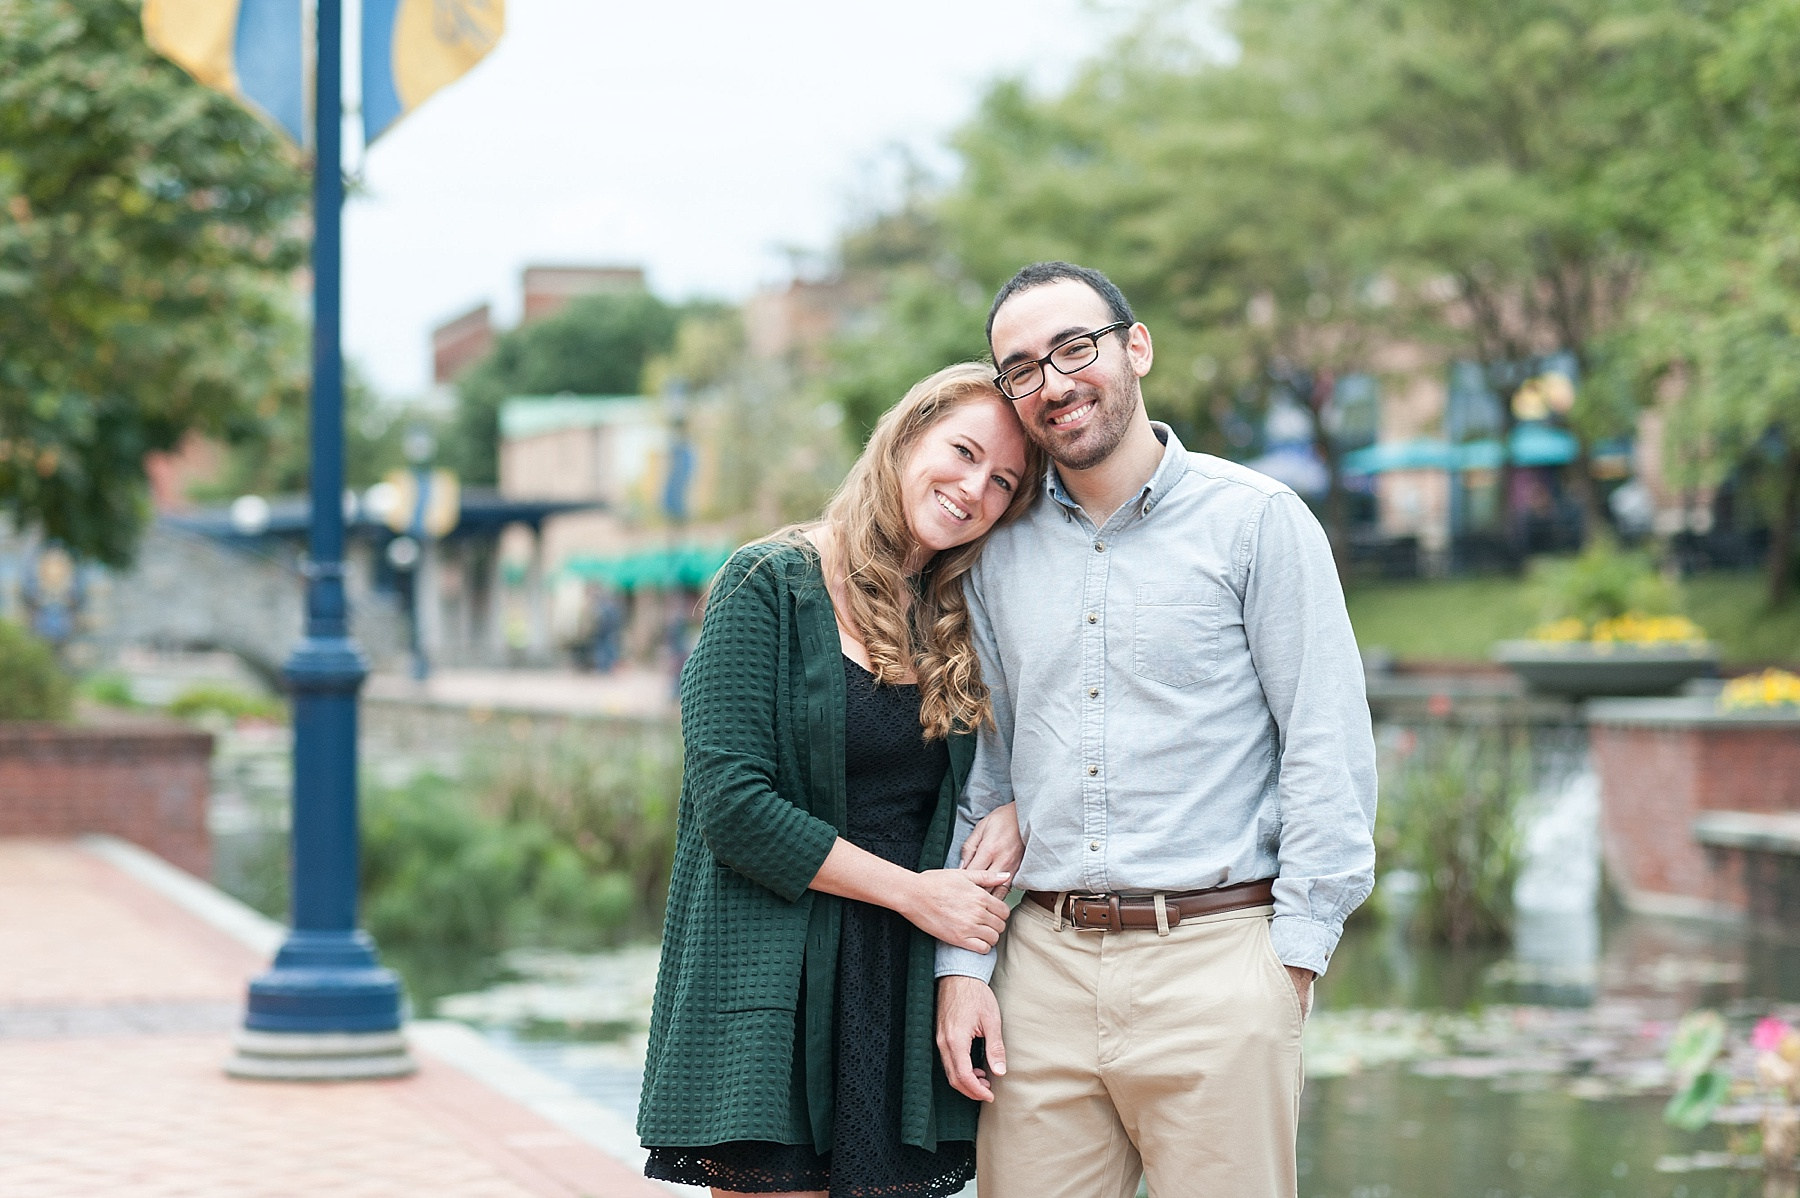 Wendy Zook Photography | Frederick MD engagement session | Frederick MD wedding photographer | Frederick wedding photographer, Maryland wedding photographer, engagement session, Frederick engagement session, engagement session in Frederick